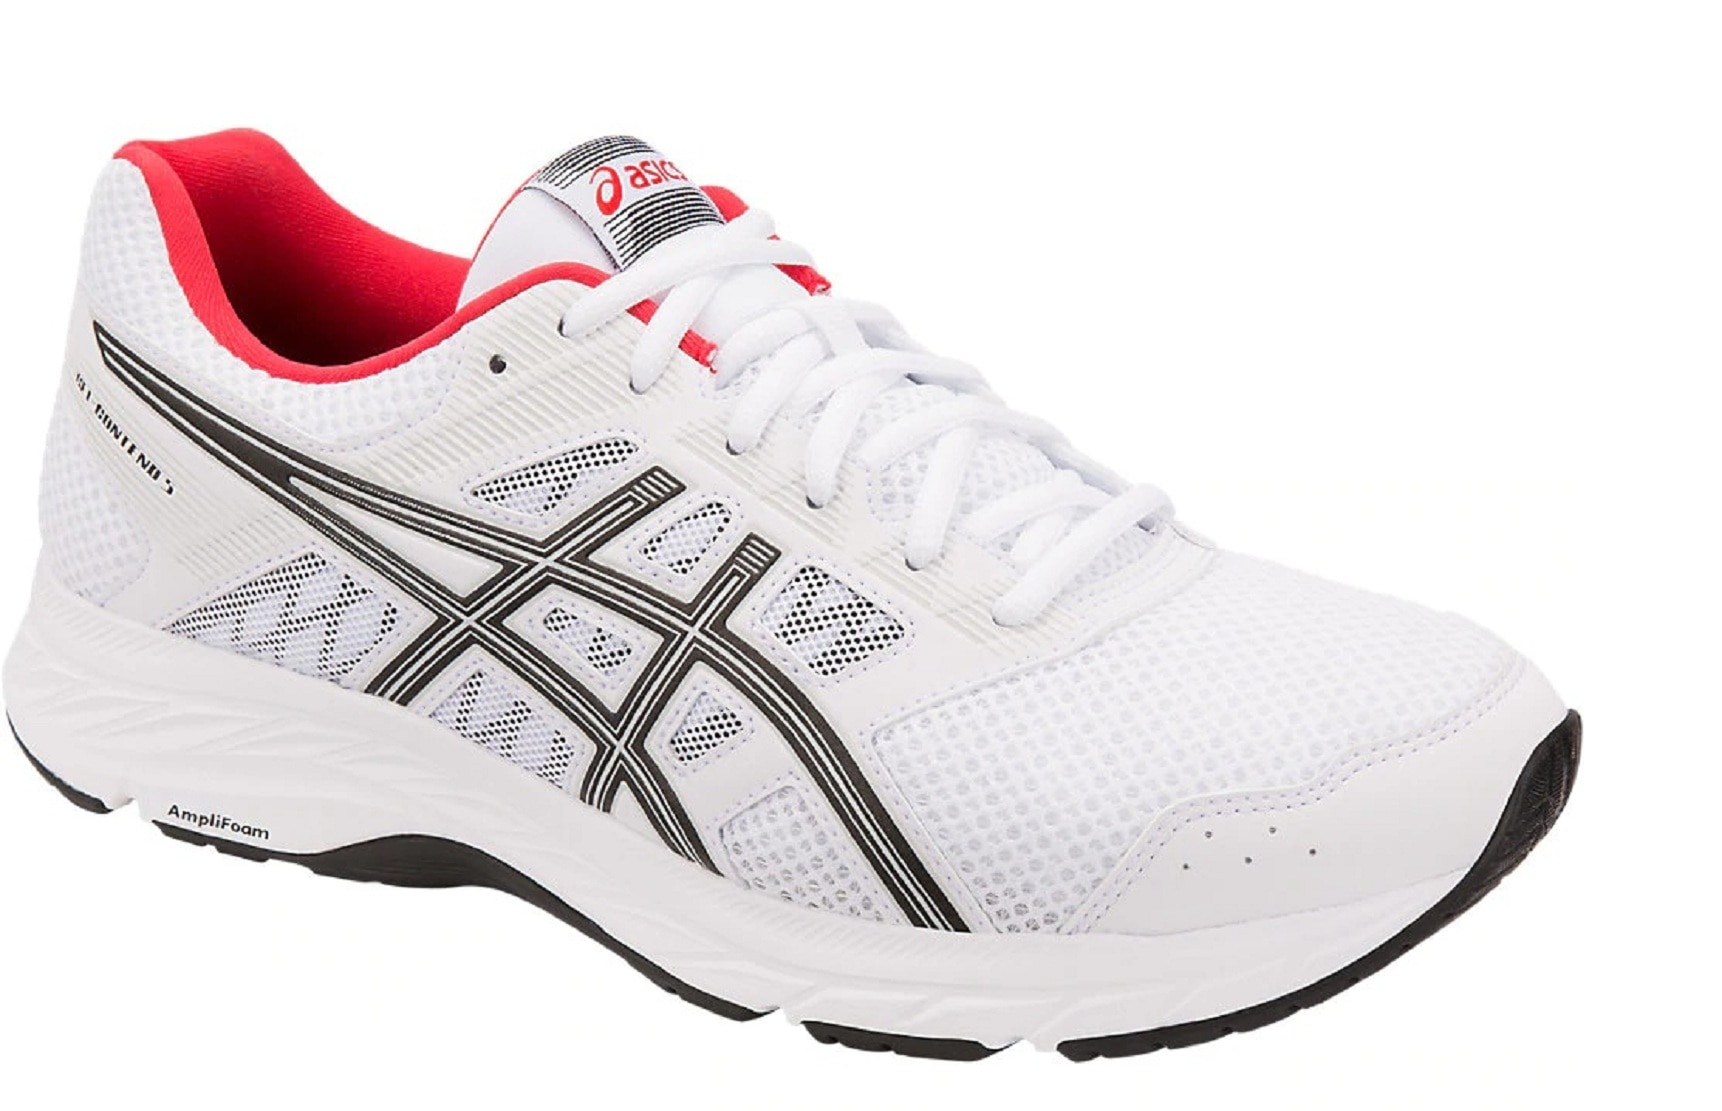 ca39d991b0ce2 Asics Patriot 8 Black Running Shoes for Men online in India at Best ...